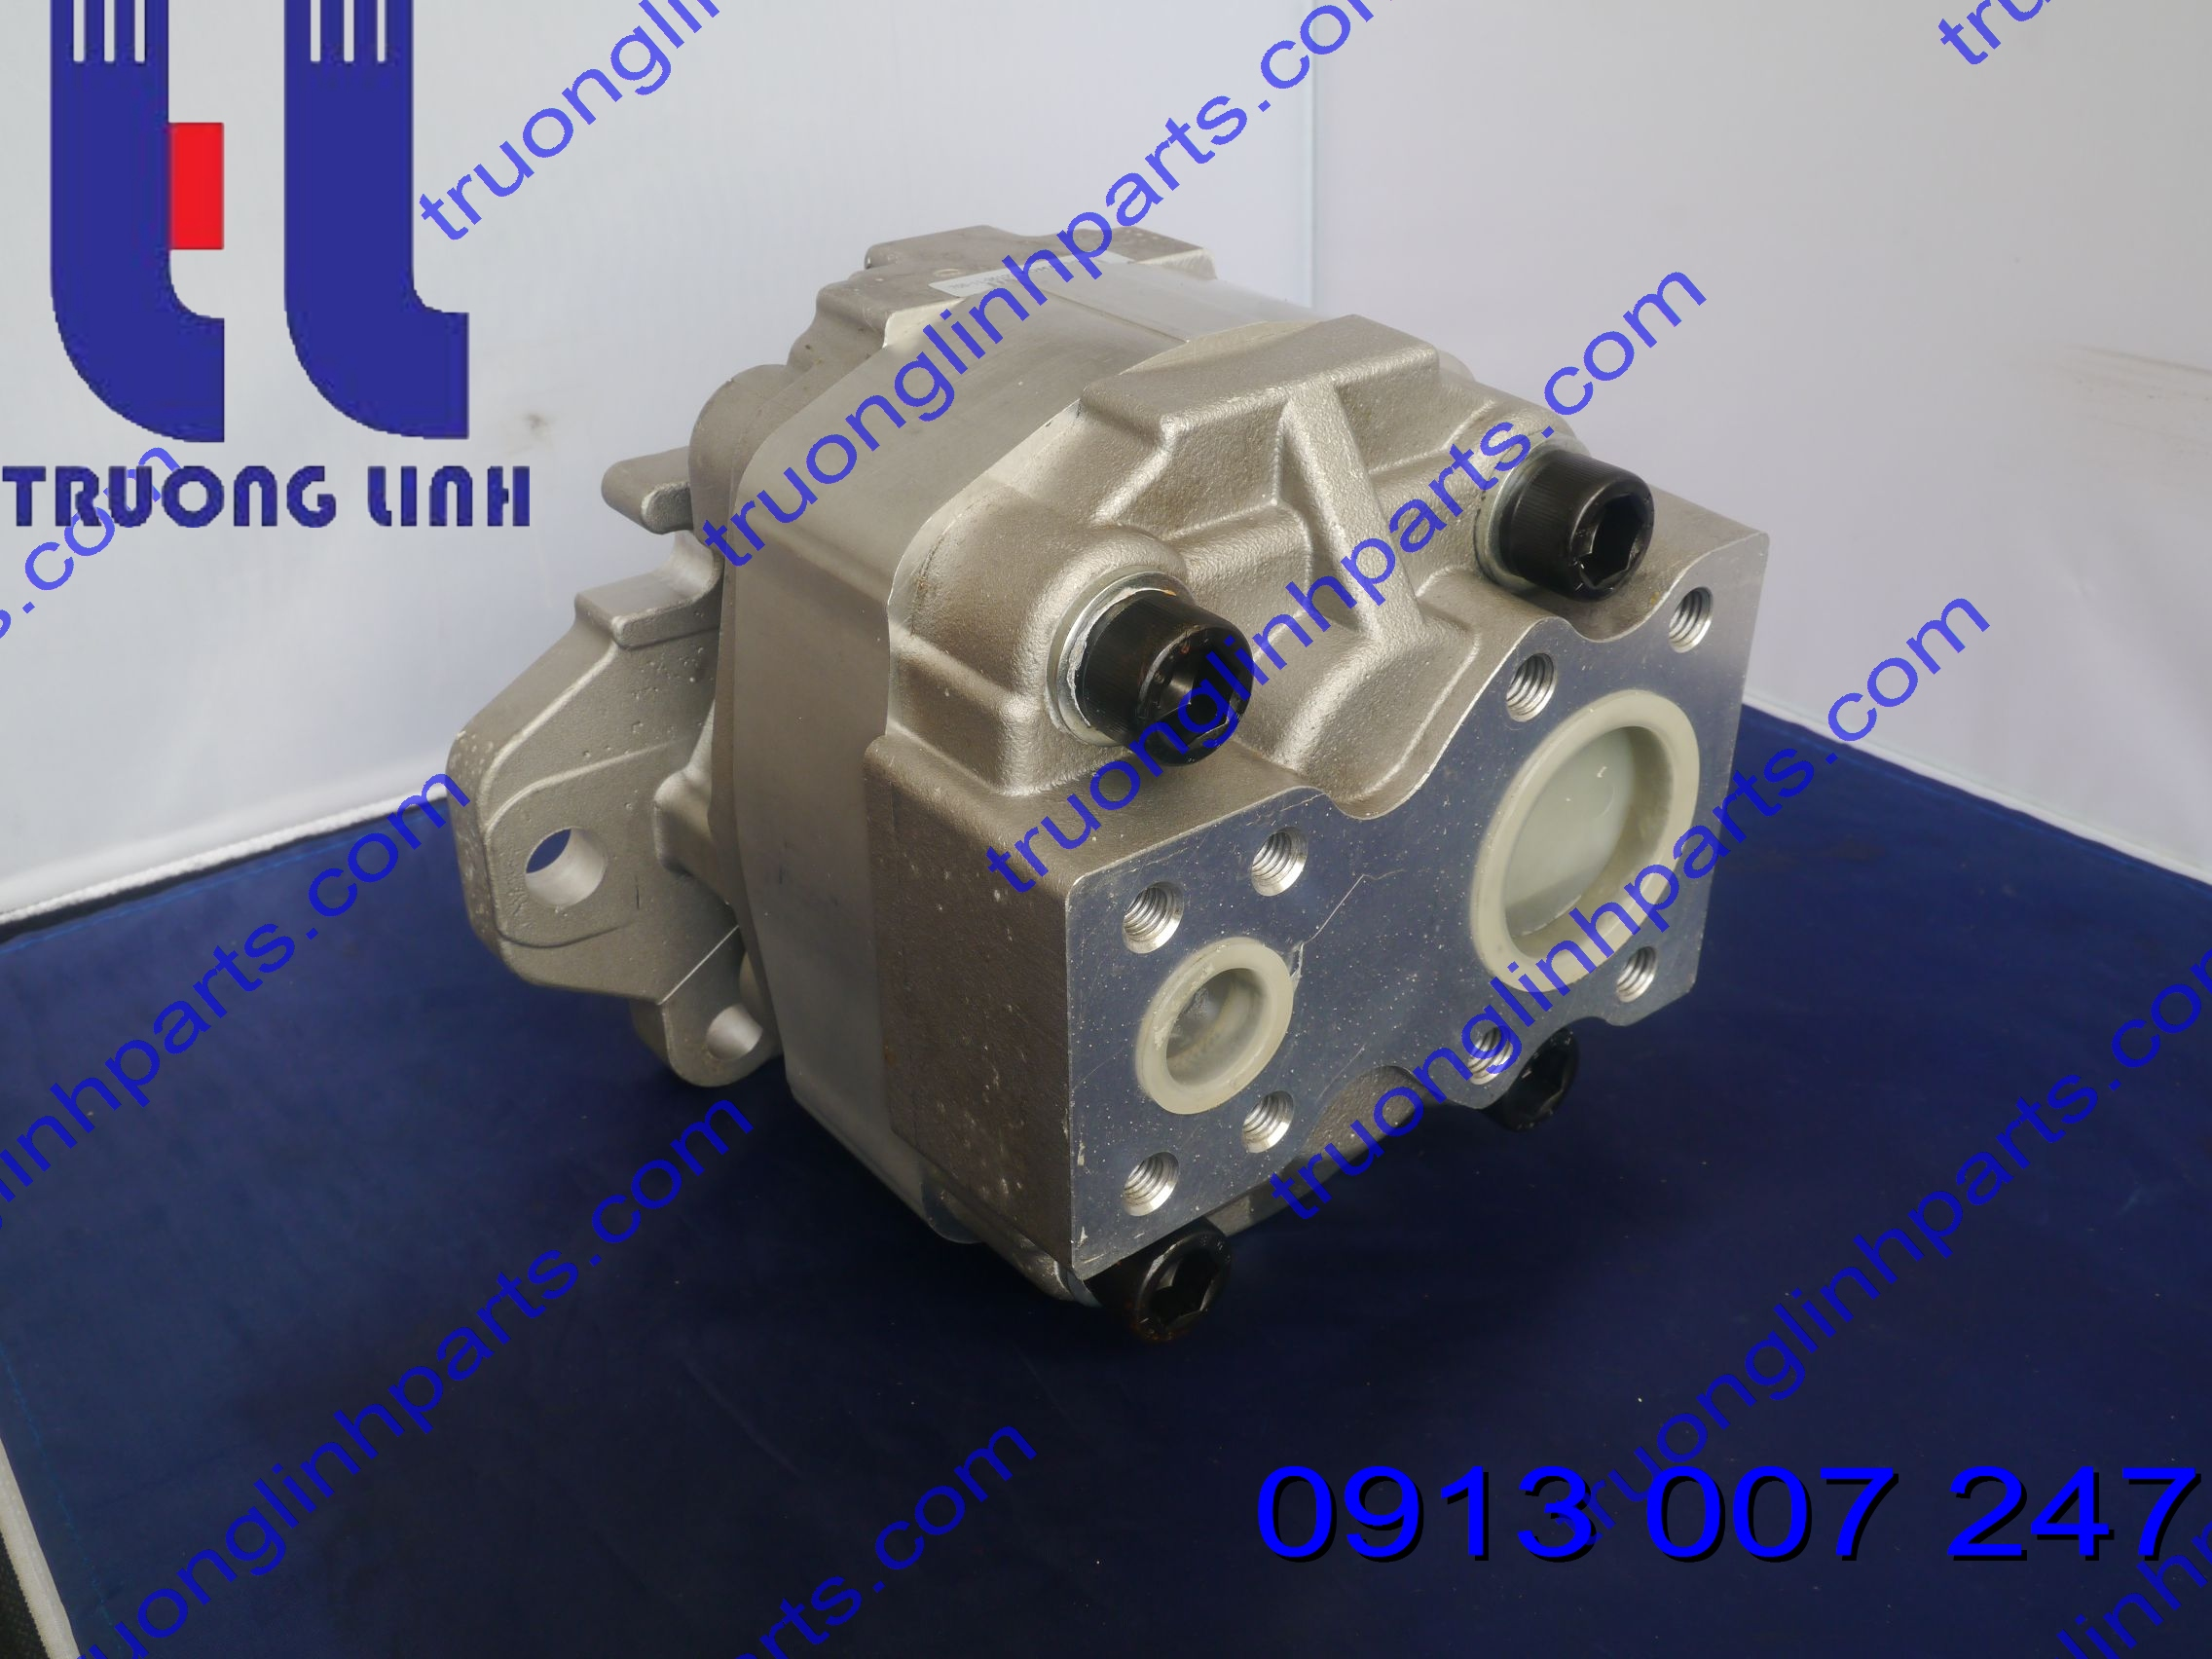 hydraulic pump Bánh Răng - CHARGE PUMP - 705-11-36100 Switch Pump komatsu 530-1